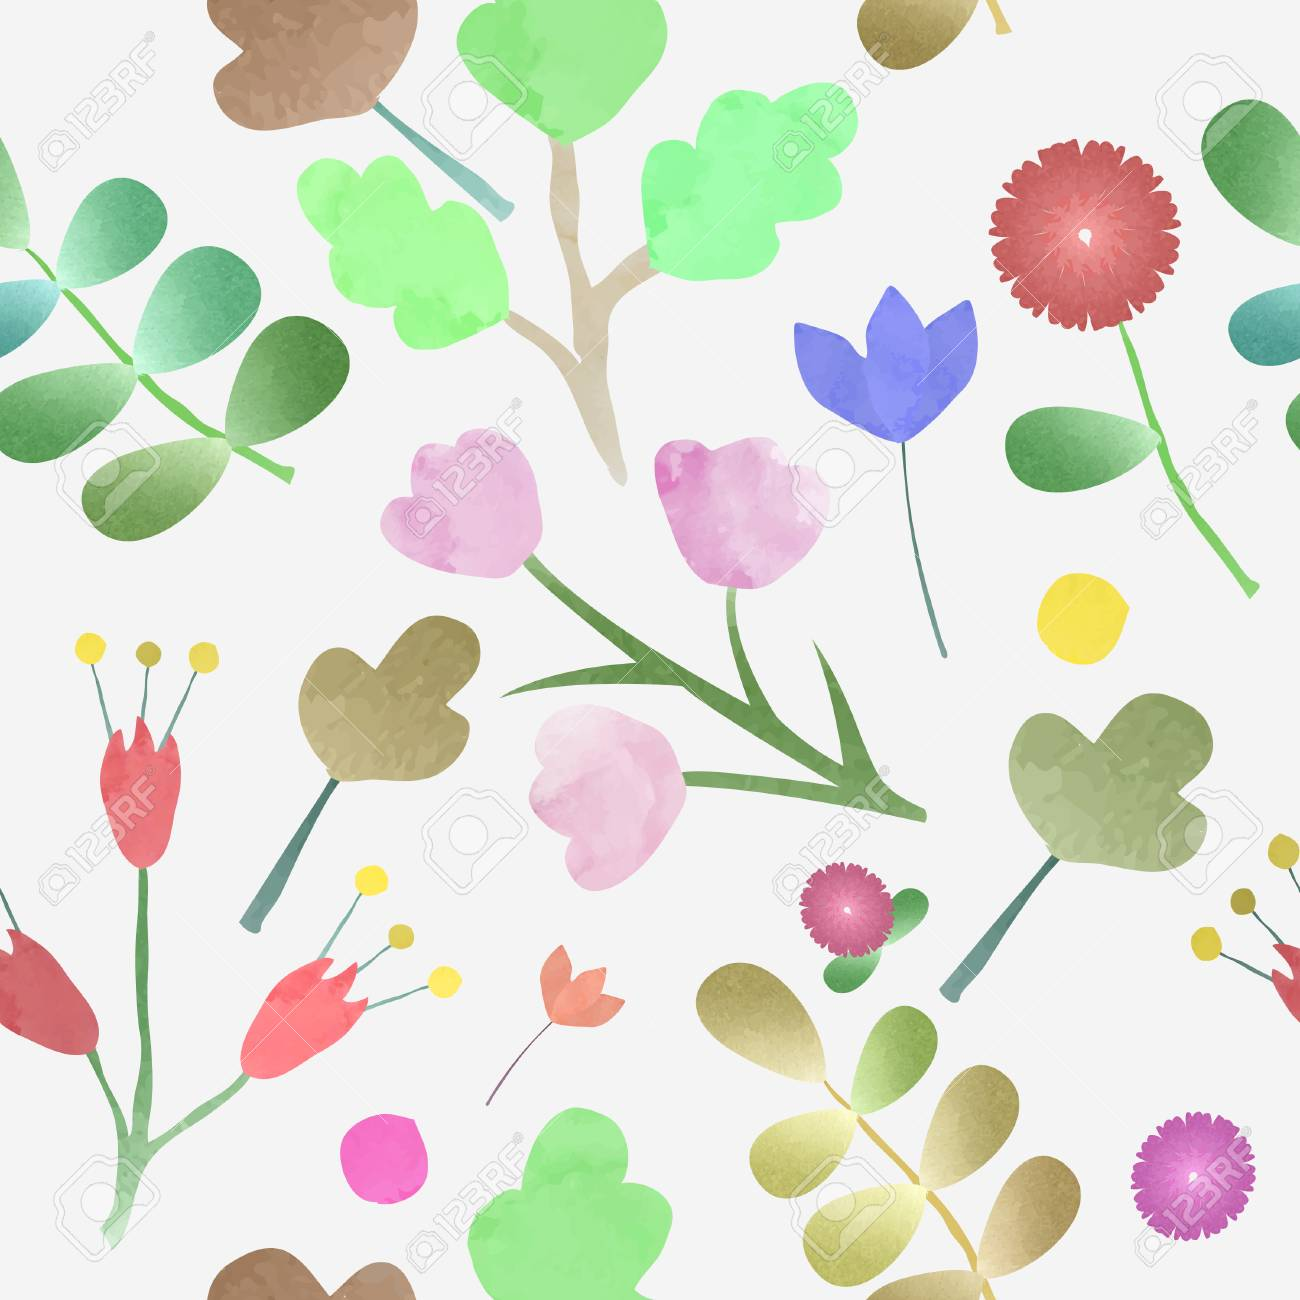 Watercolor Flower Frame Background Vector Royalty Free Cliparts